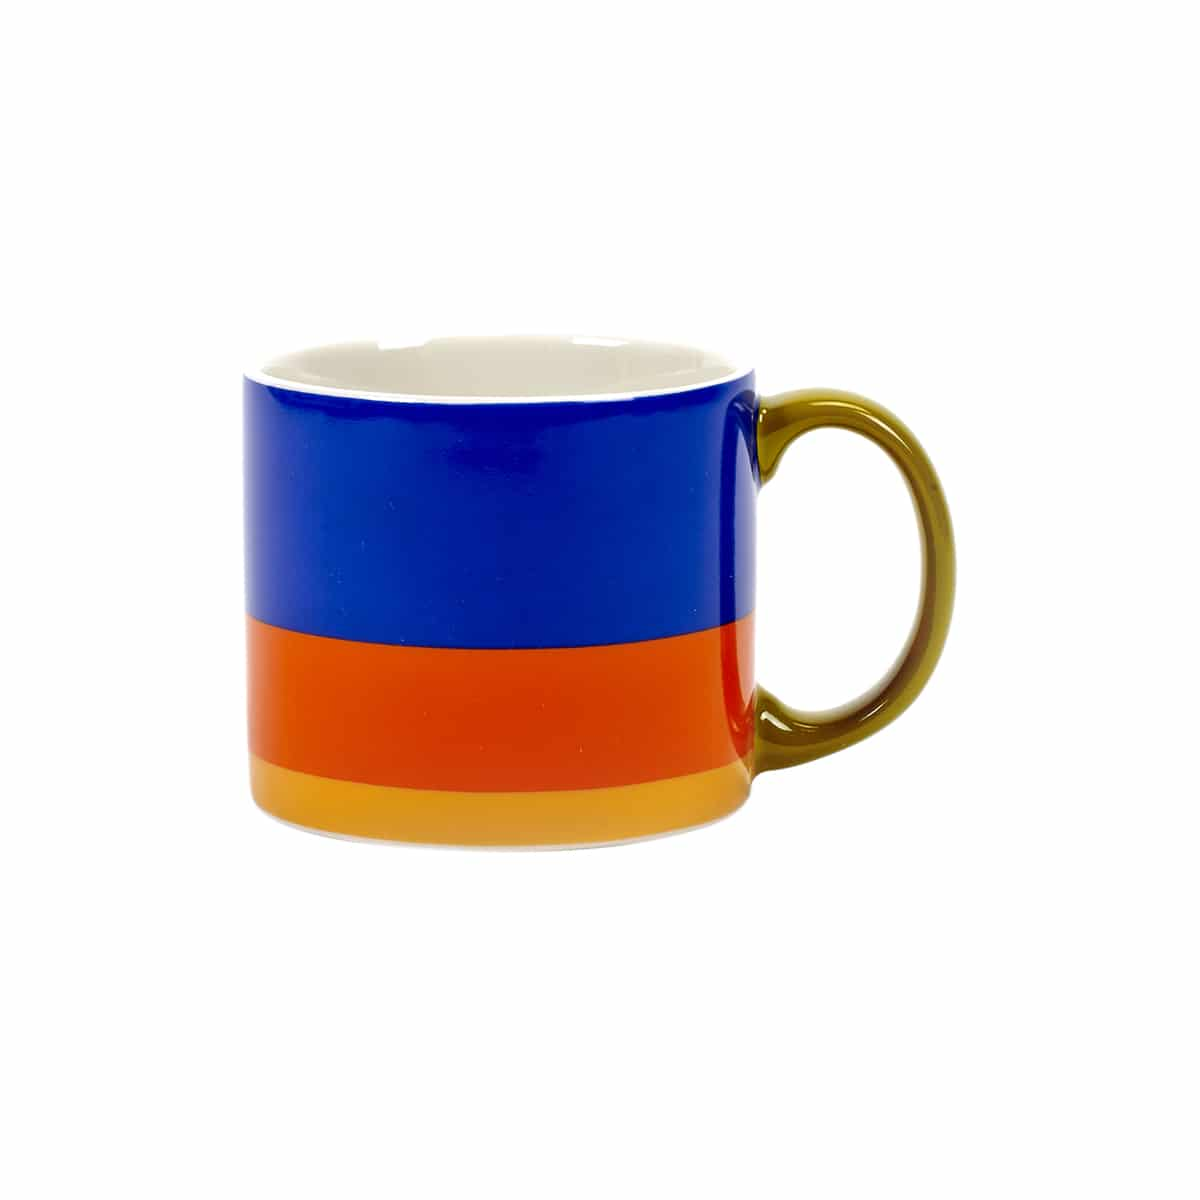 mug my art mug mark bleu/orange de jansen+co zeeloft